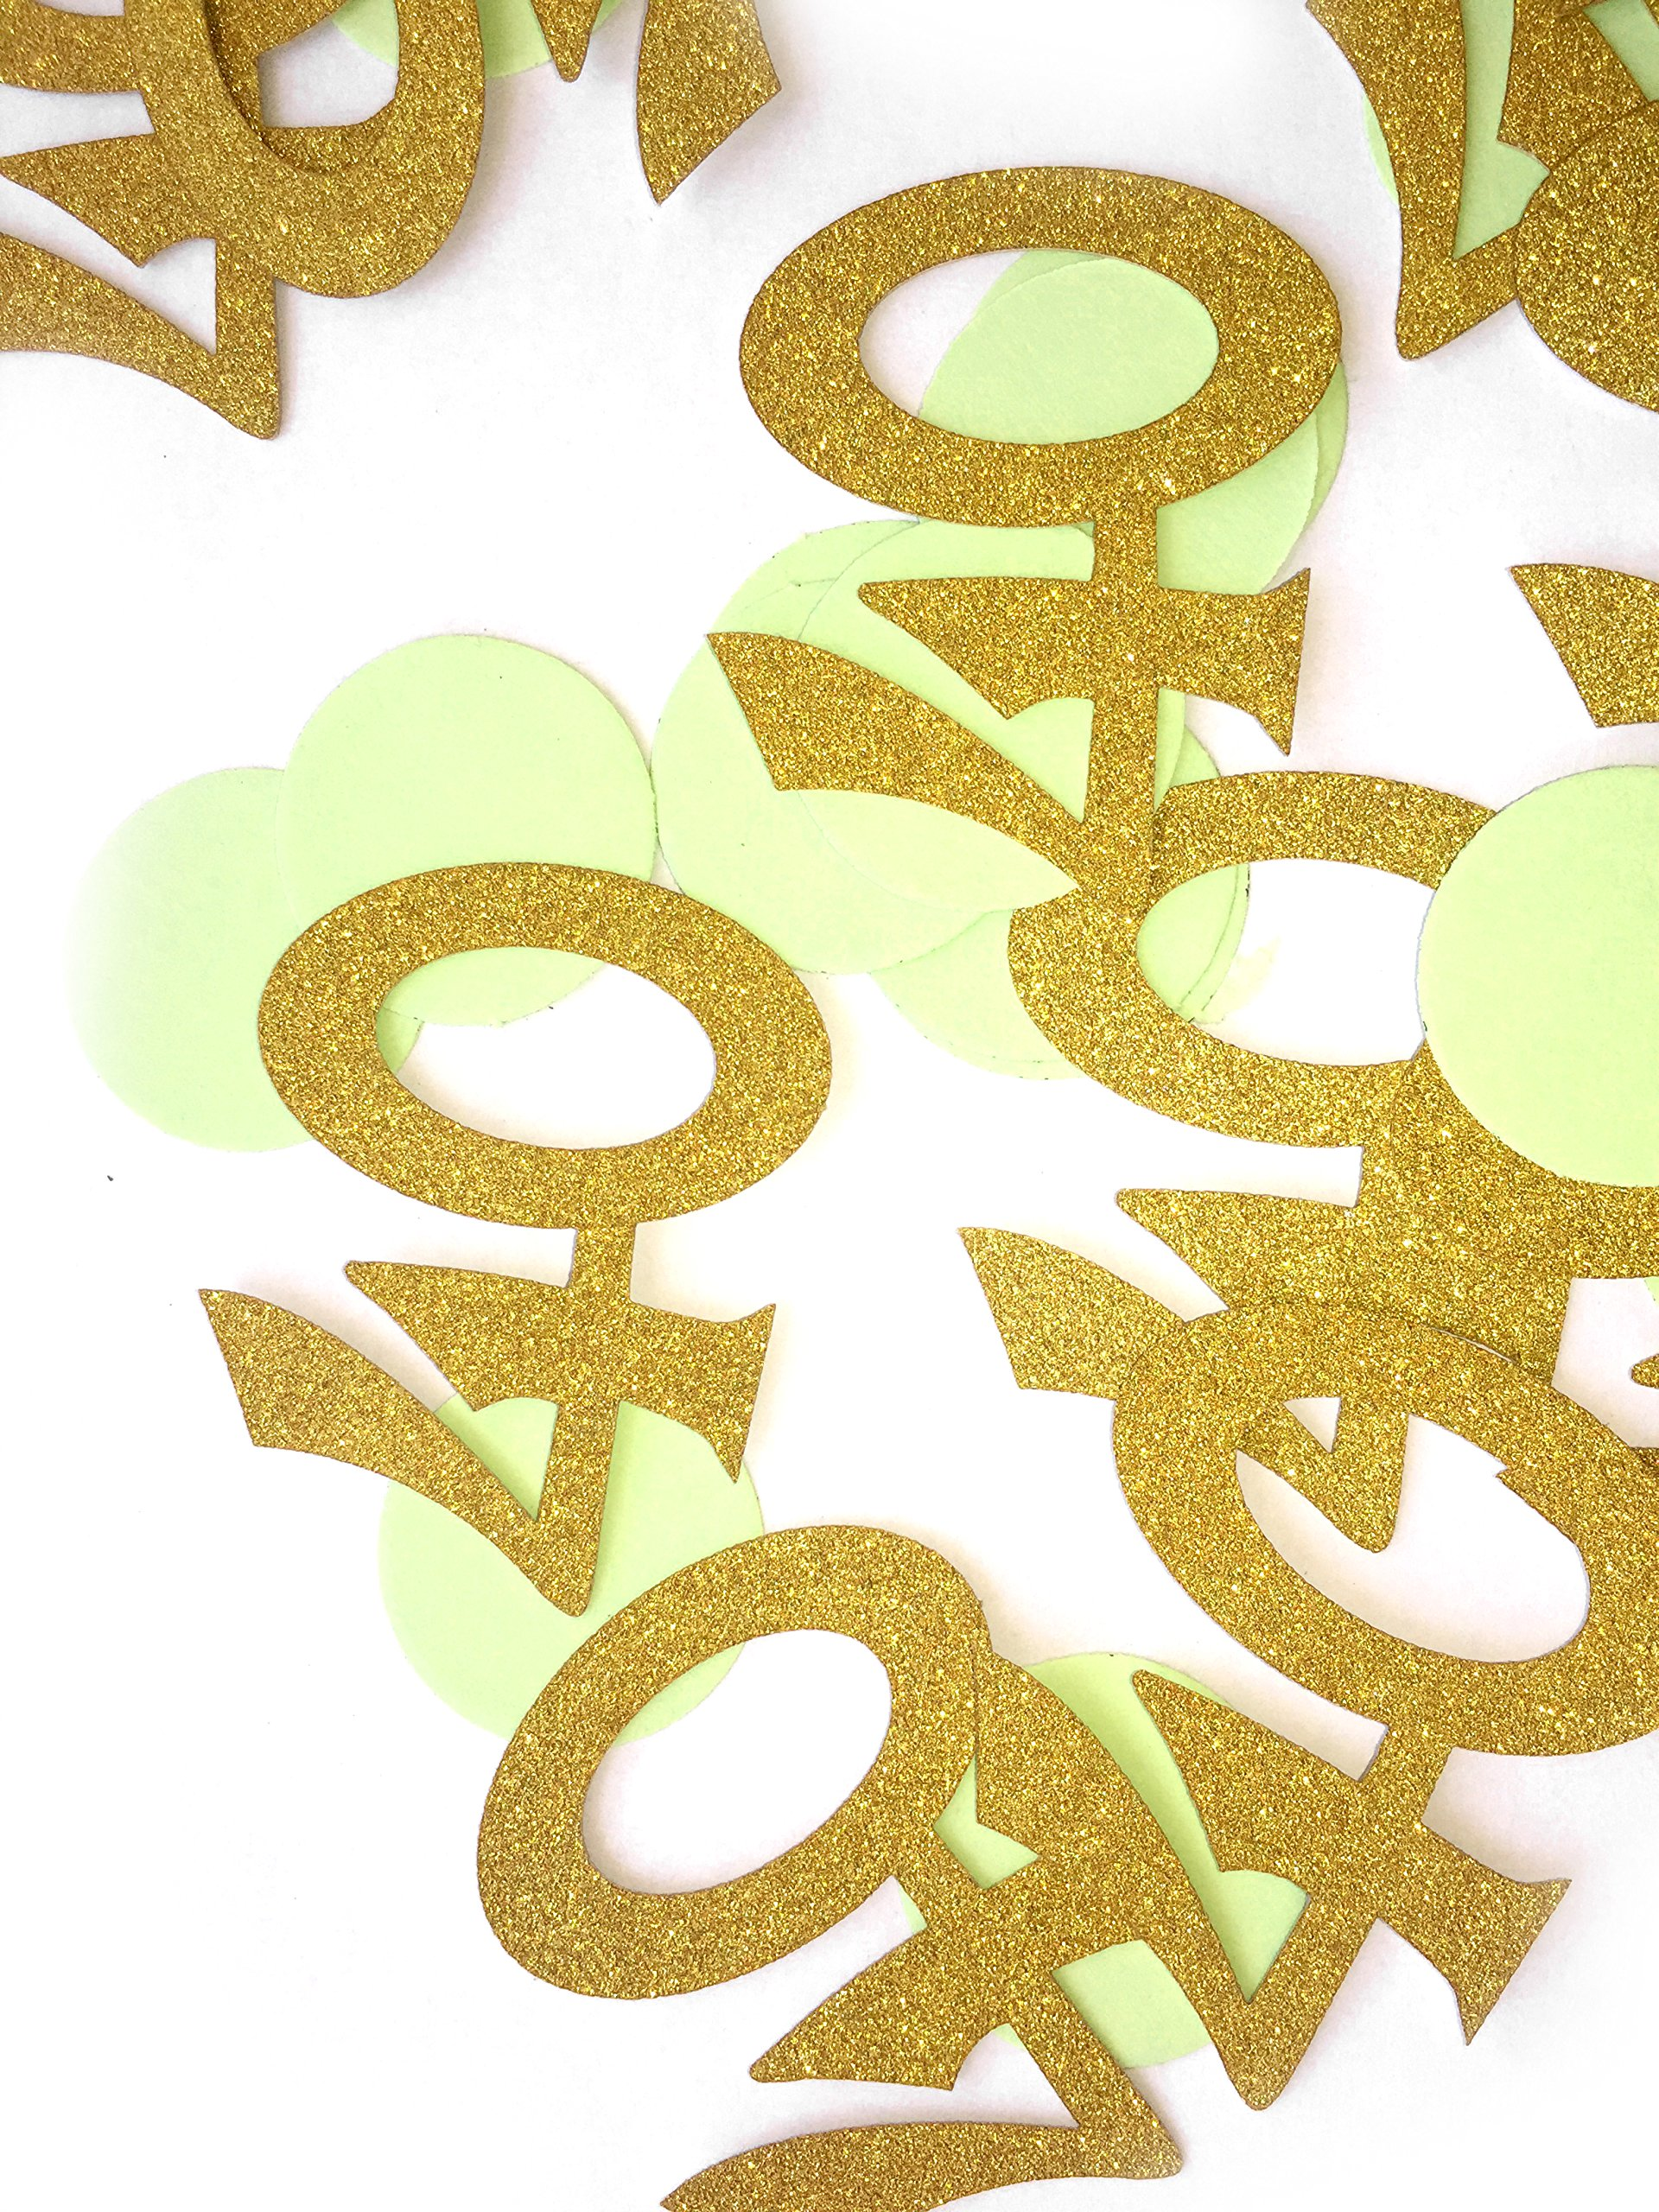 Glitter Gold 40th Birthday Party Confetti - 2 Packs - (40ct each pack), 40th Birthday Decorations, Mint Green and Gold Number ''40'' and Circle Confetti, Celebrating 40 Party Confetti